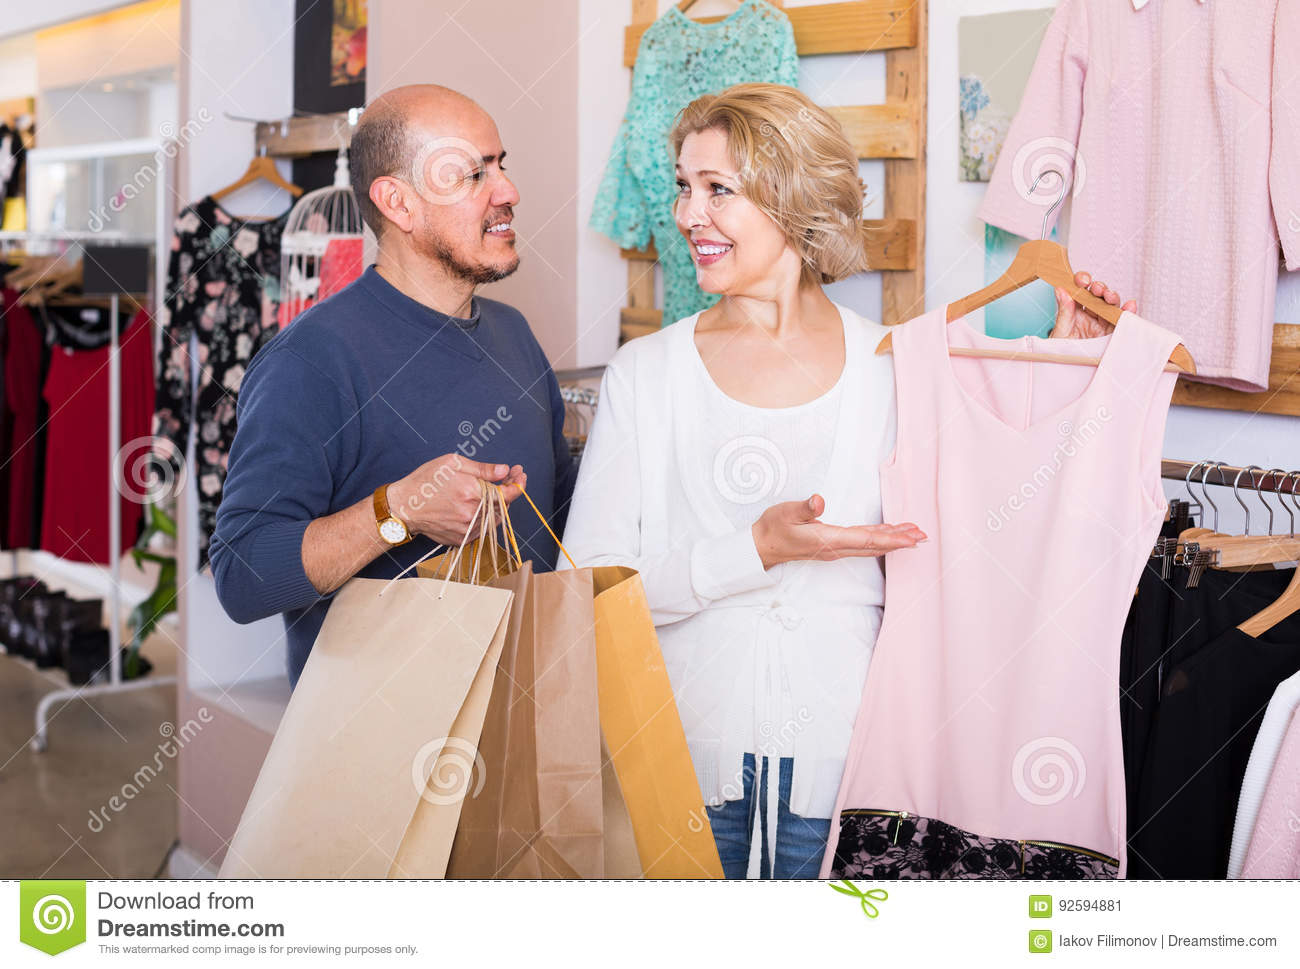 Wife Buying Dress At Apparel Store, Man Is Bored Stock Image - Image